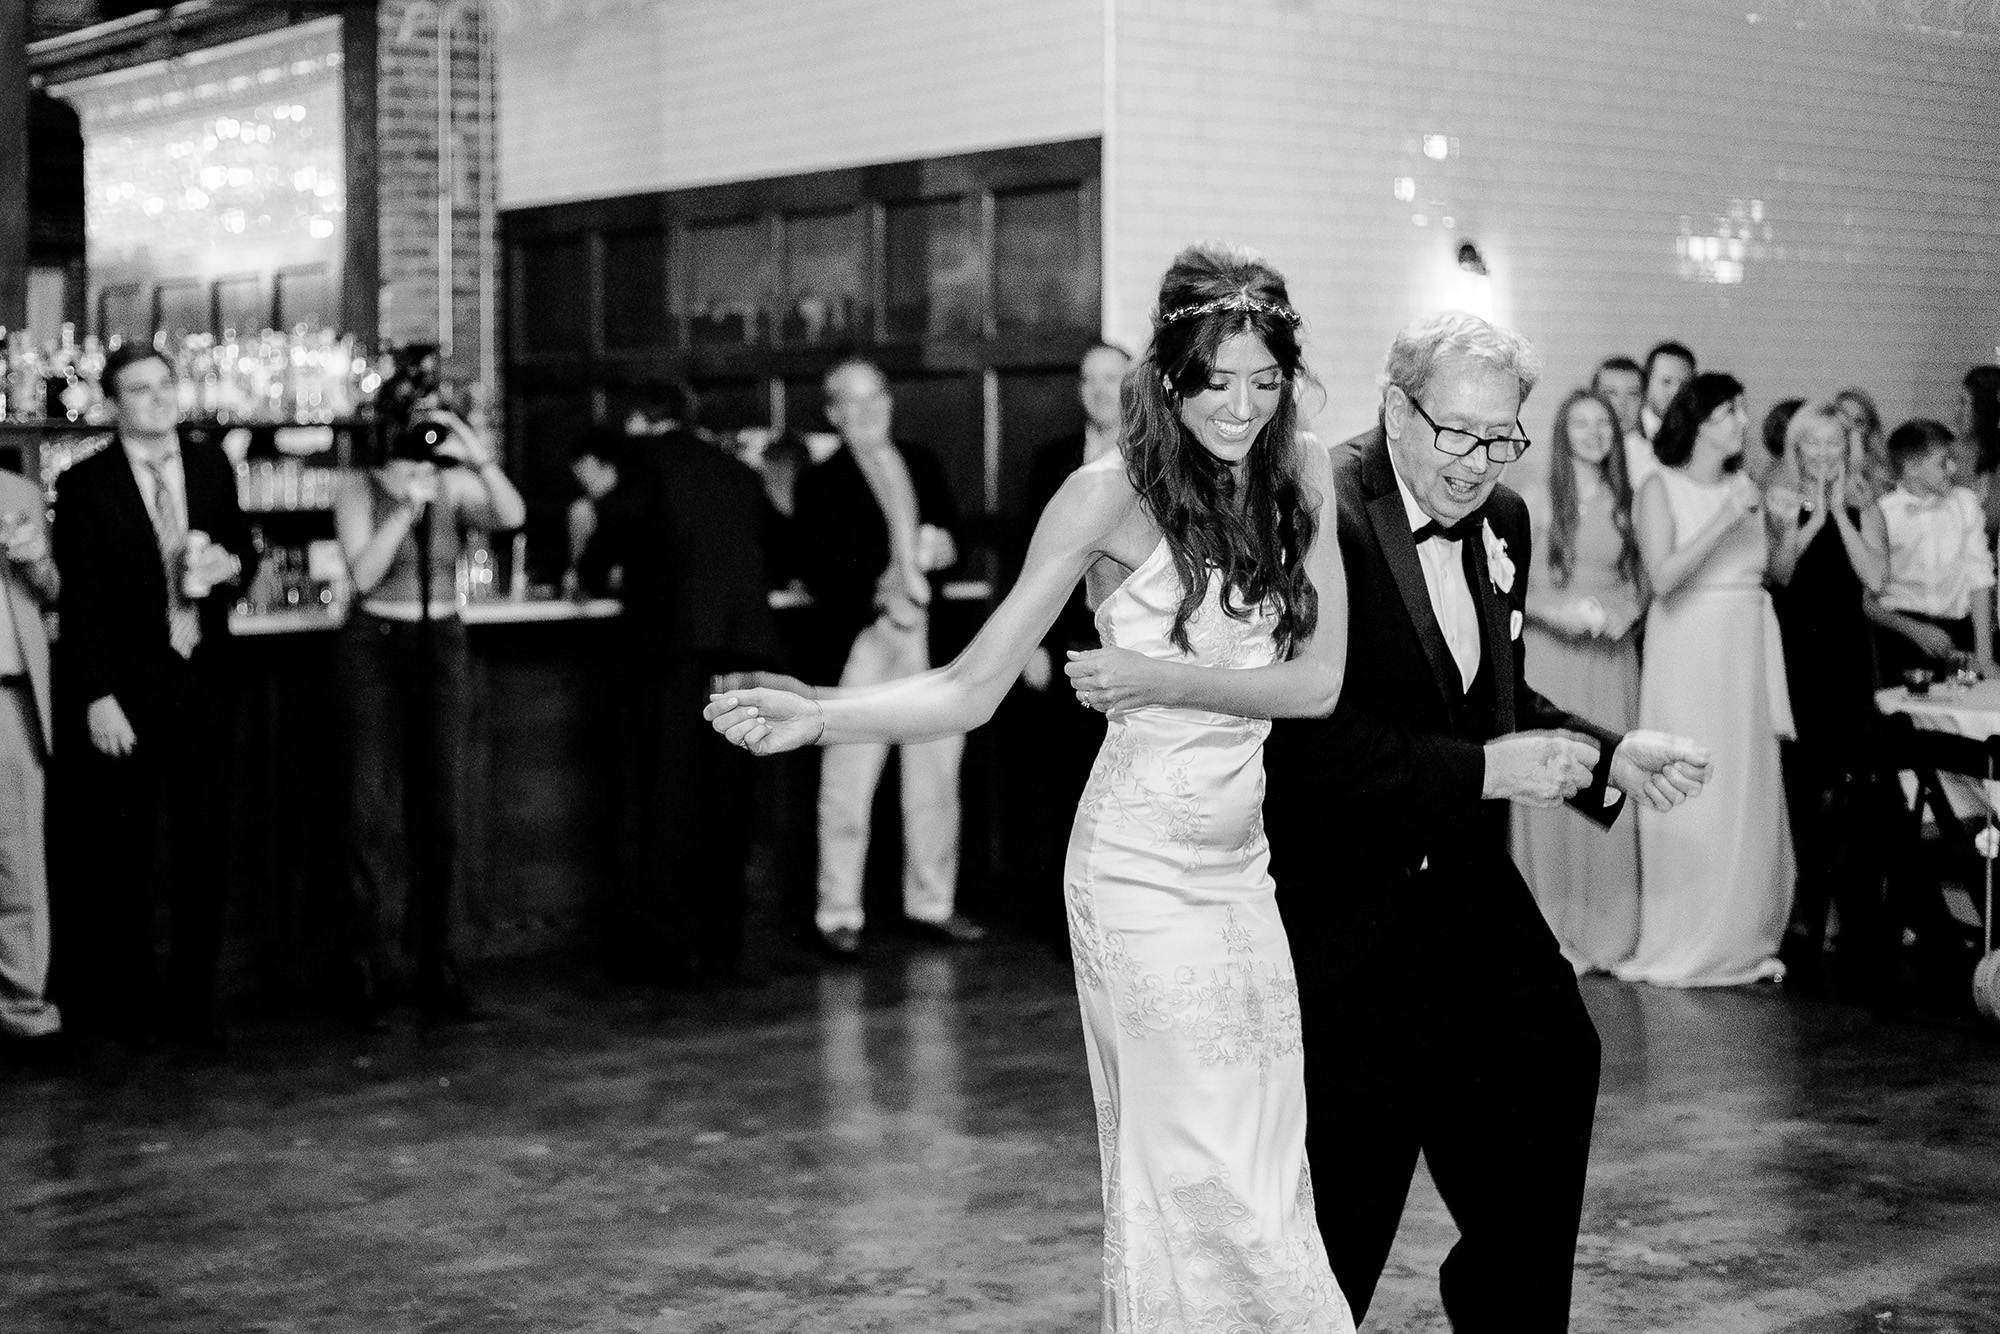 Kansas_City_Wedding_Photographer_zzk.jpg